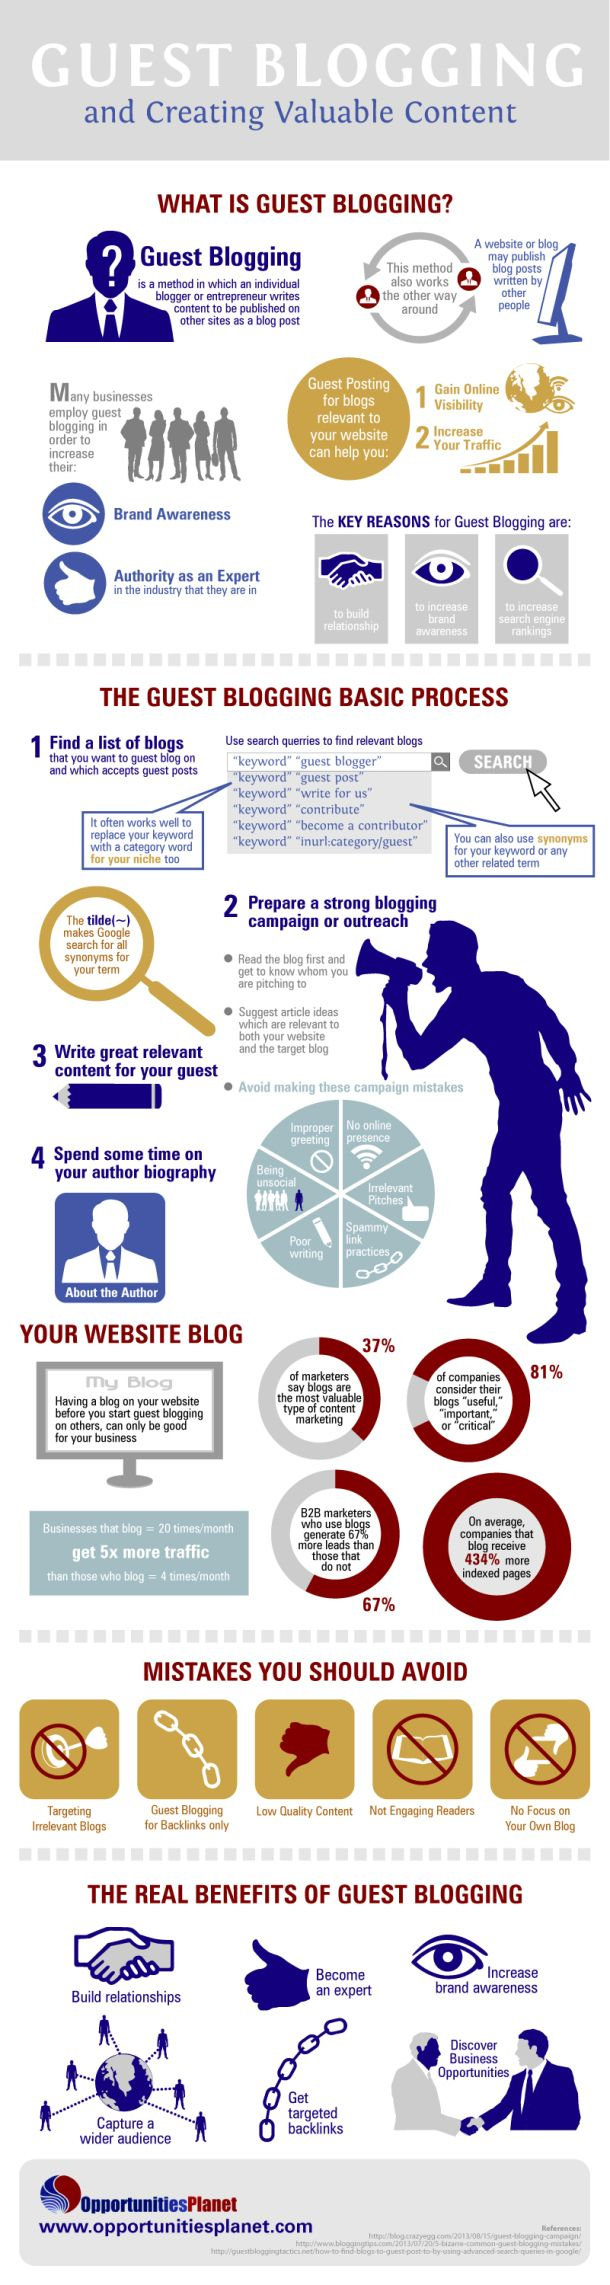 Guest Blogging And Creating Valuable Content [INFOGRAPHIC] #blogging #content